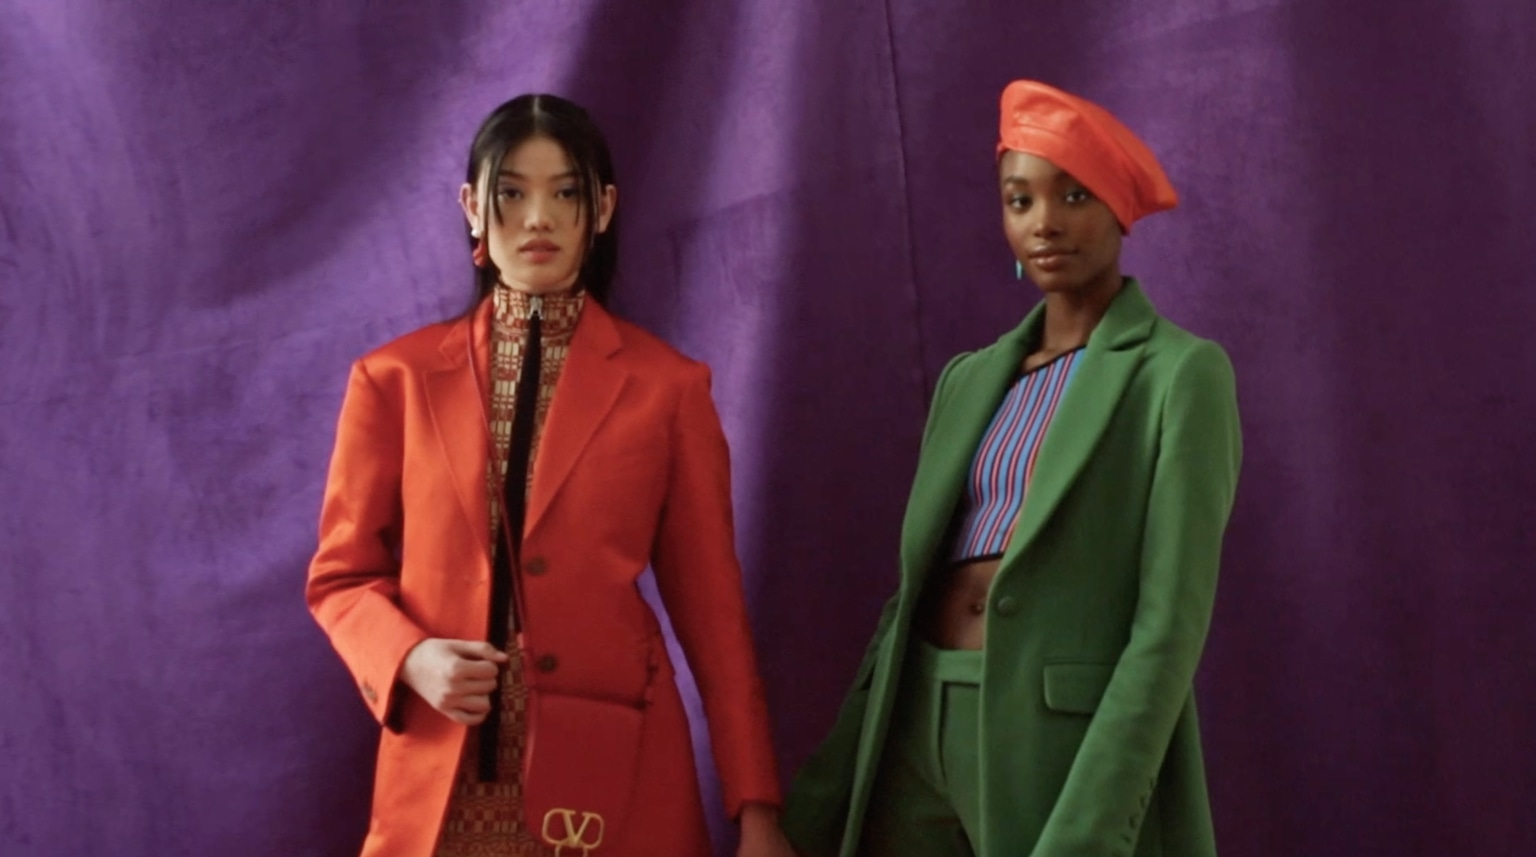 THE ZOE REPORT - HOW TO DRESS BOLDLY (FASHION FILM)